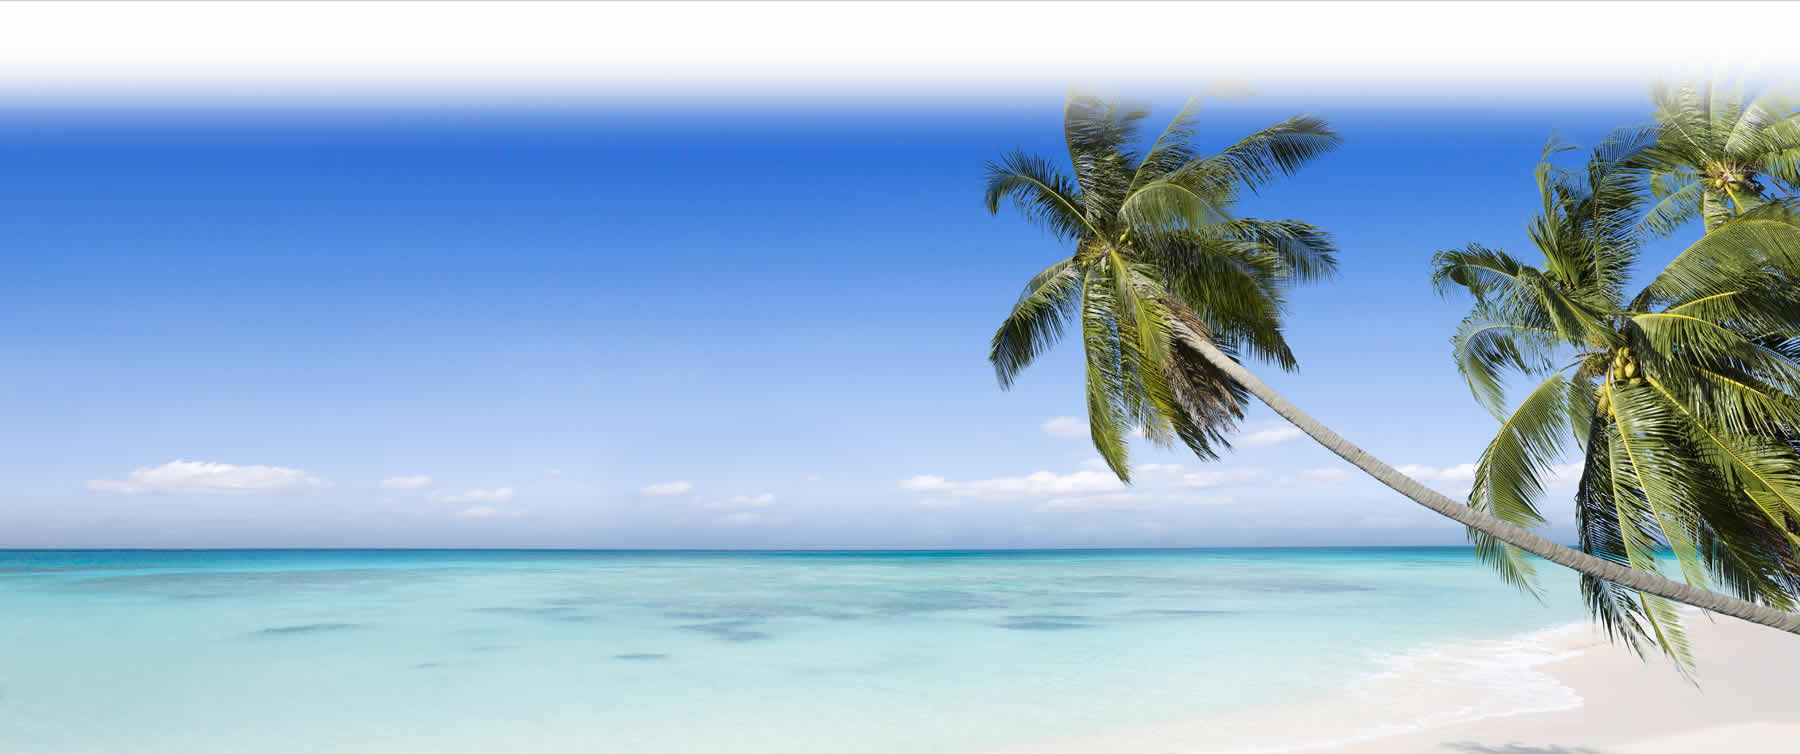 Great tropical vacation getaways can be booked with Wetzstein Travel of Bismarck, North Dakota.